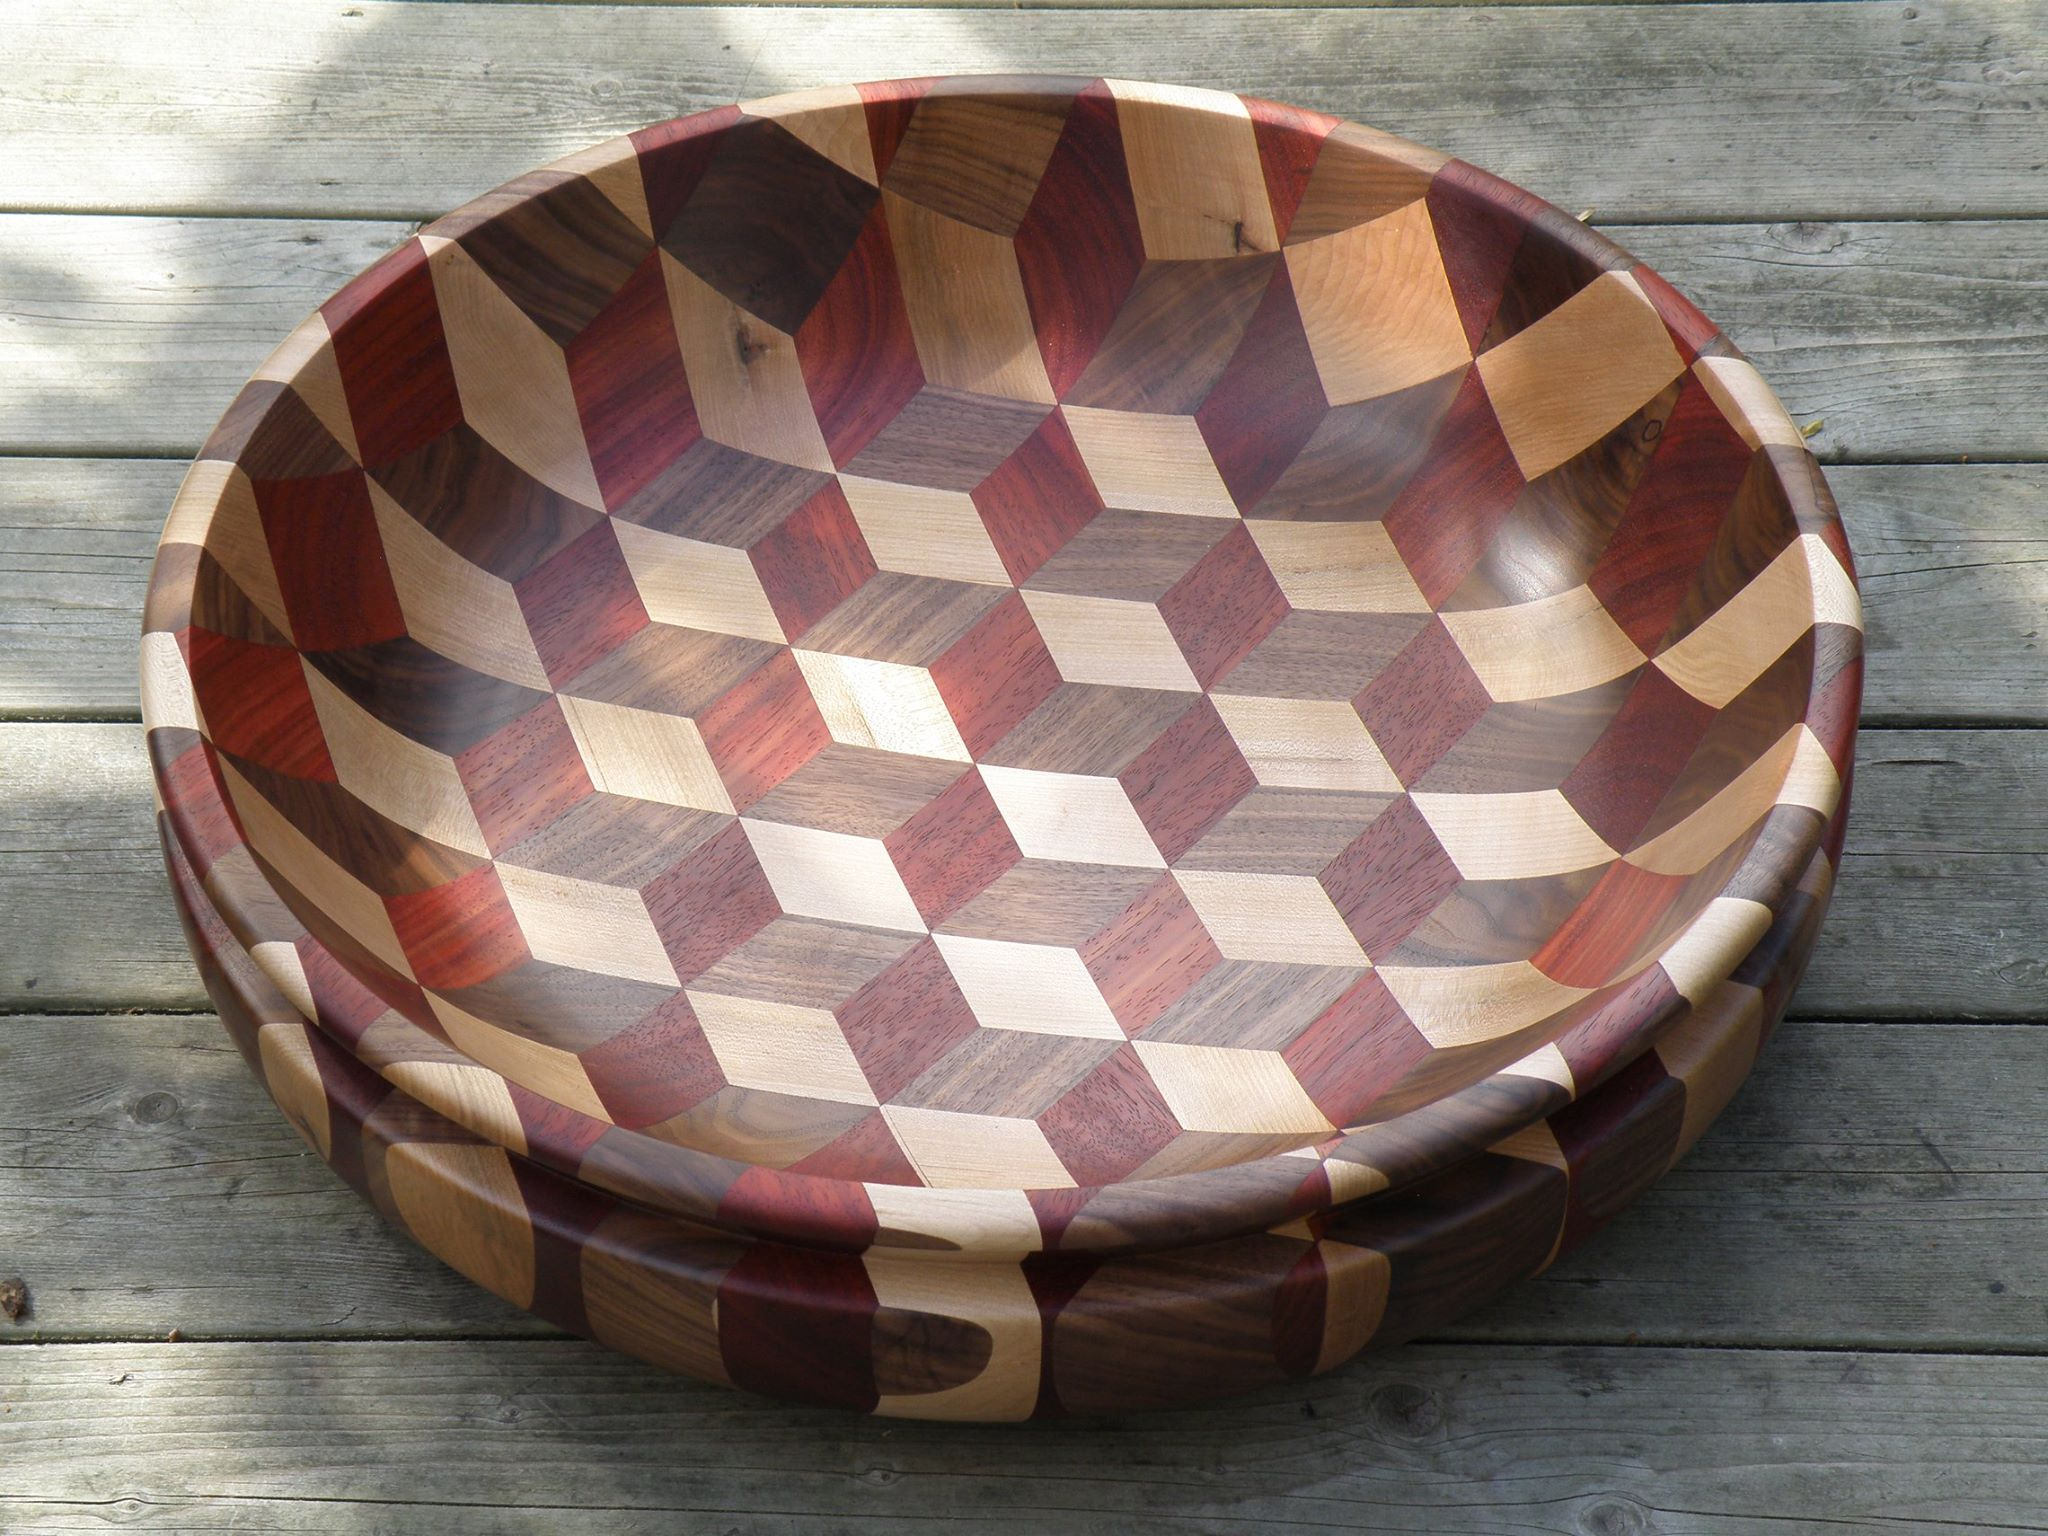 Tag Woodworking Handmade Items With Love And Passion